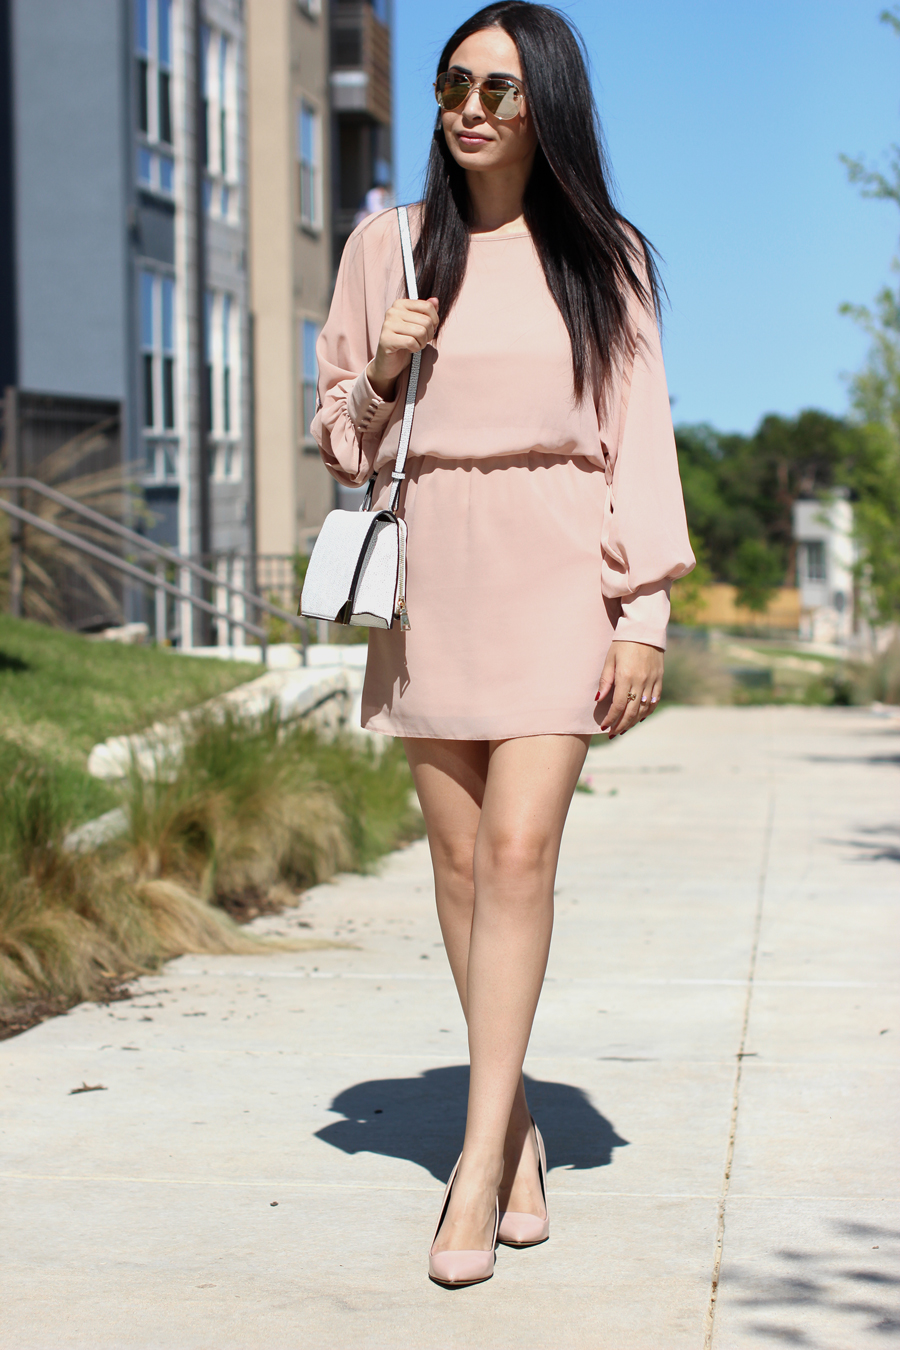 FTT-BLUSH-DRESS-NUDE-HEELS-MELIE-BIANCO-AUSTIN-FASHION-BLOGGER-2